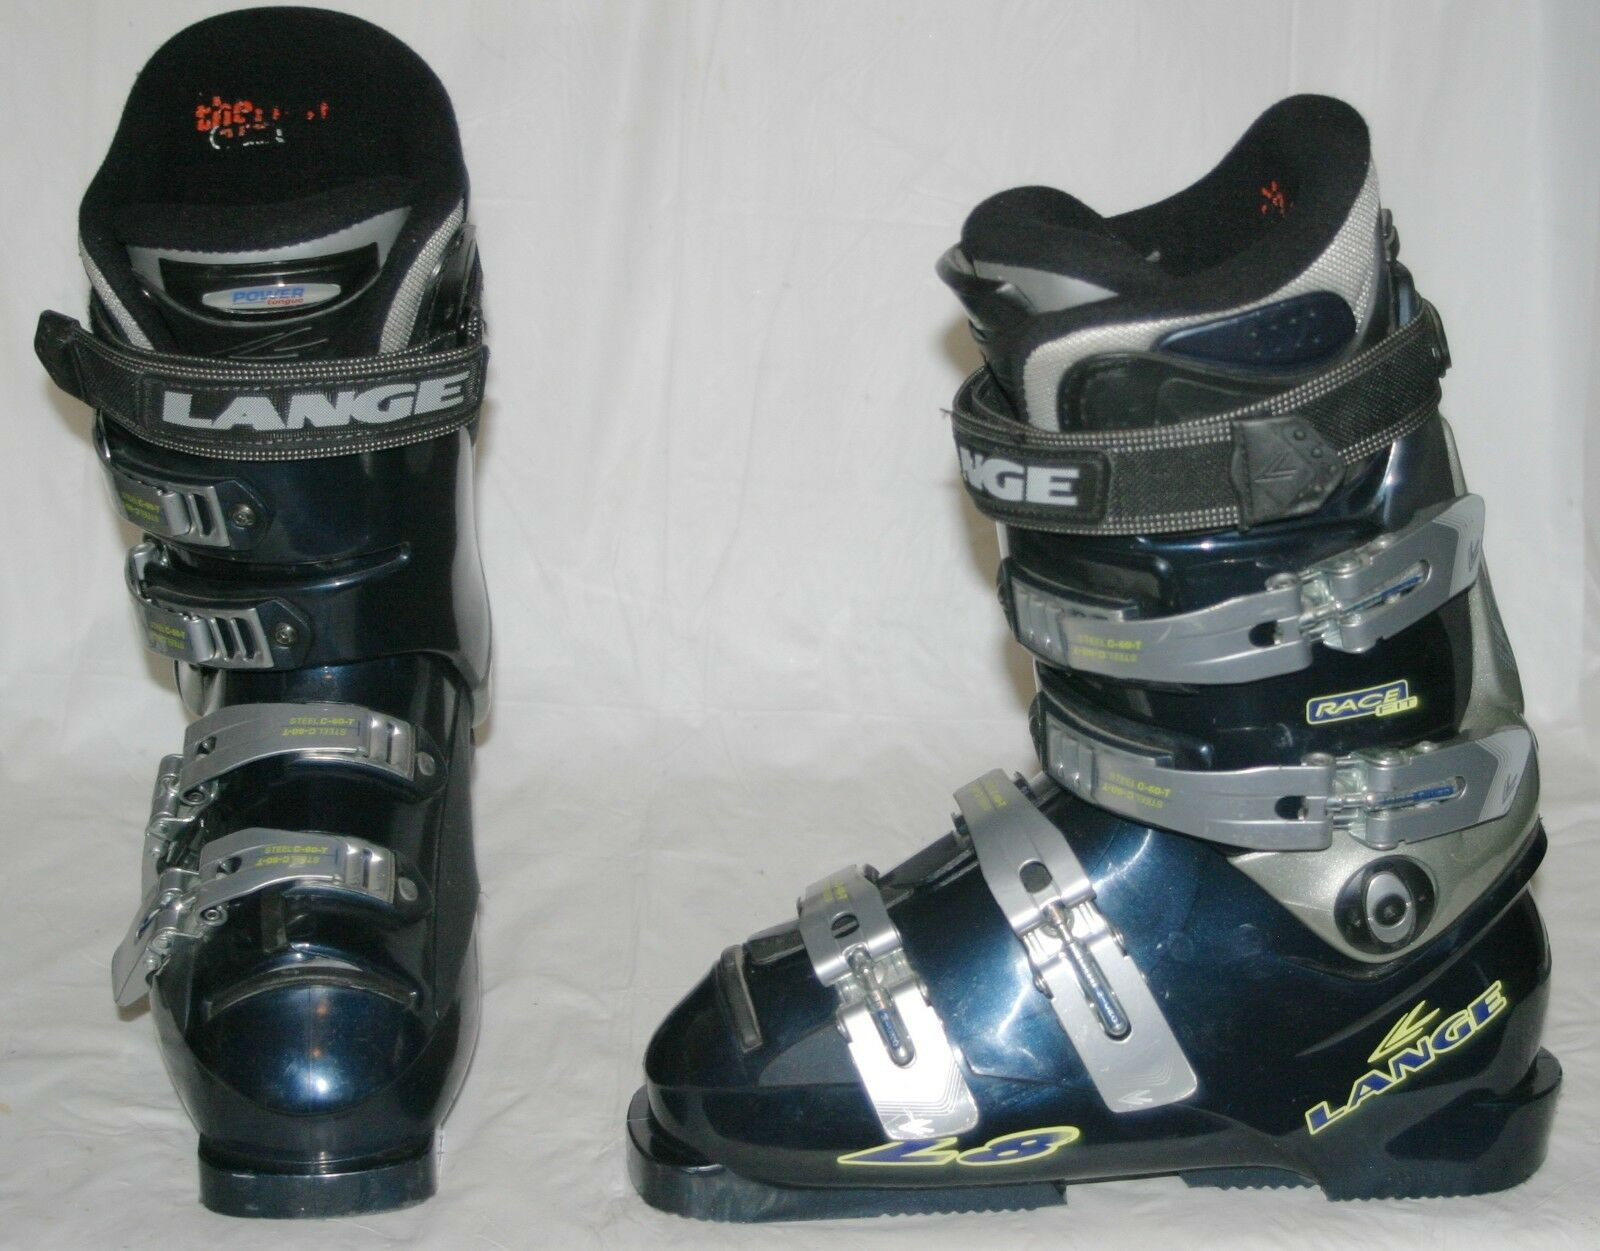 Lange L8 Race Alpine Downhill Ski Boots (6.5 US Women, 37.5 EU) Dark bluee VGUC